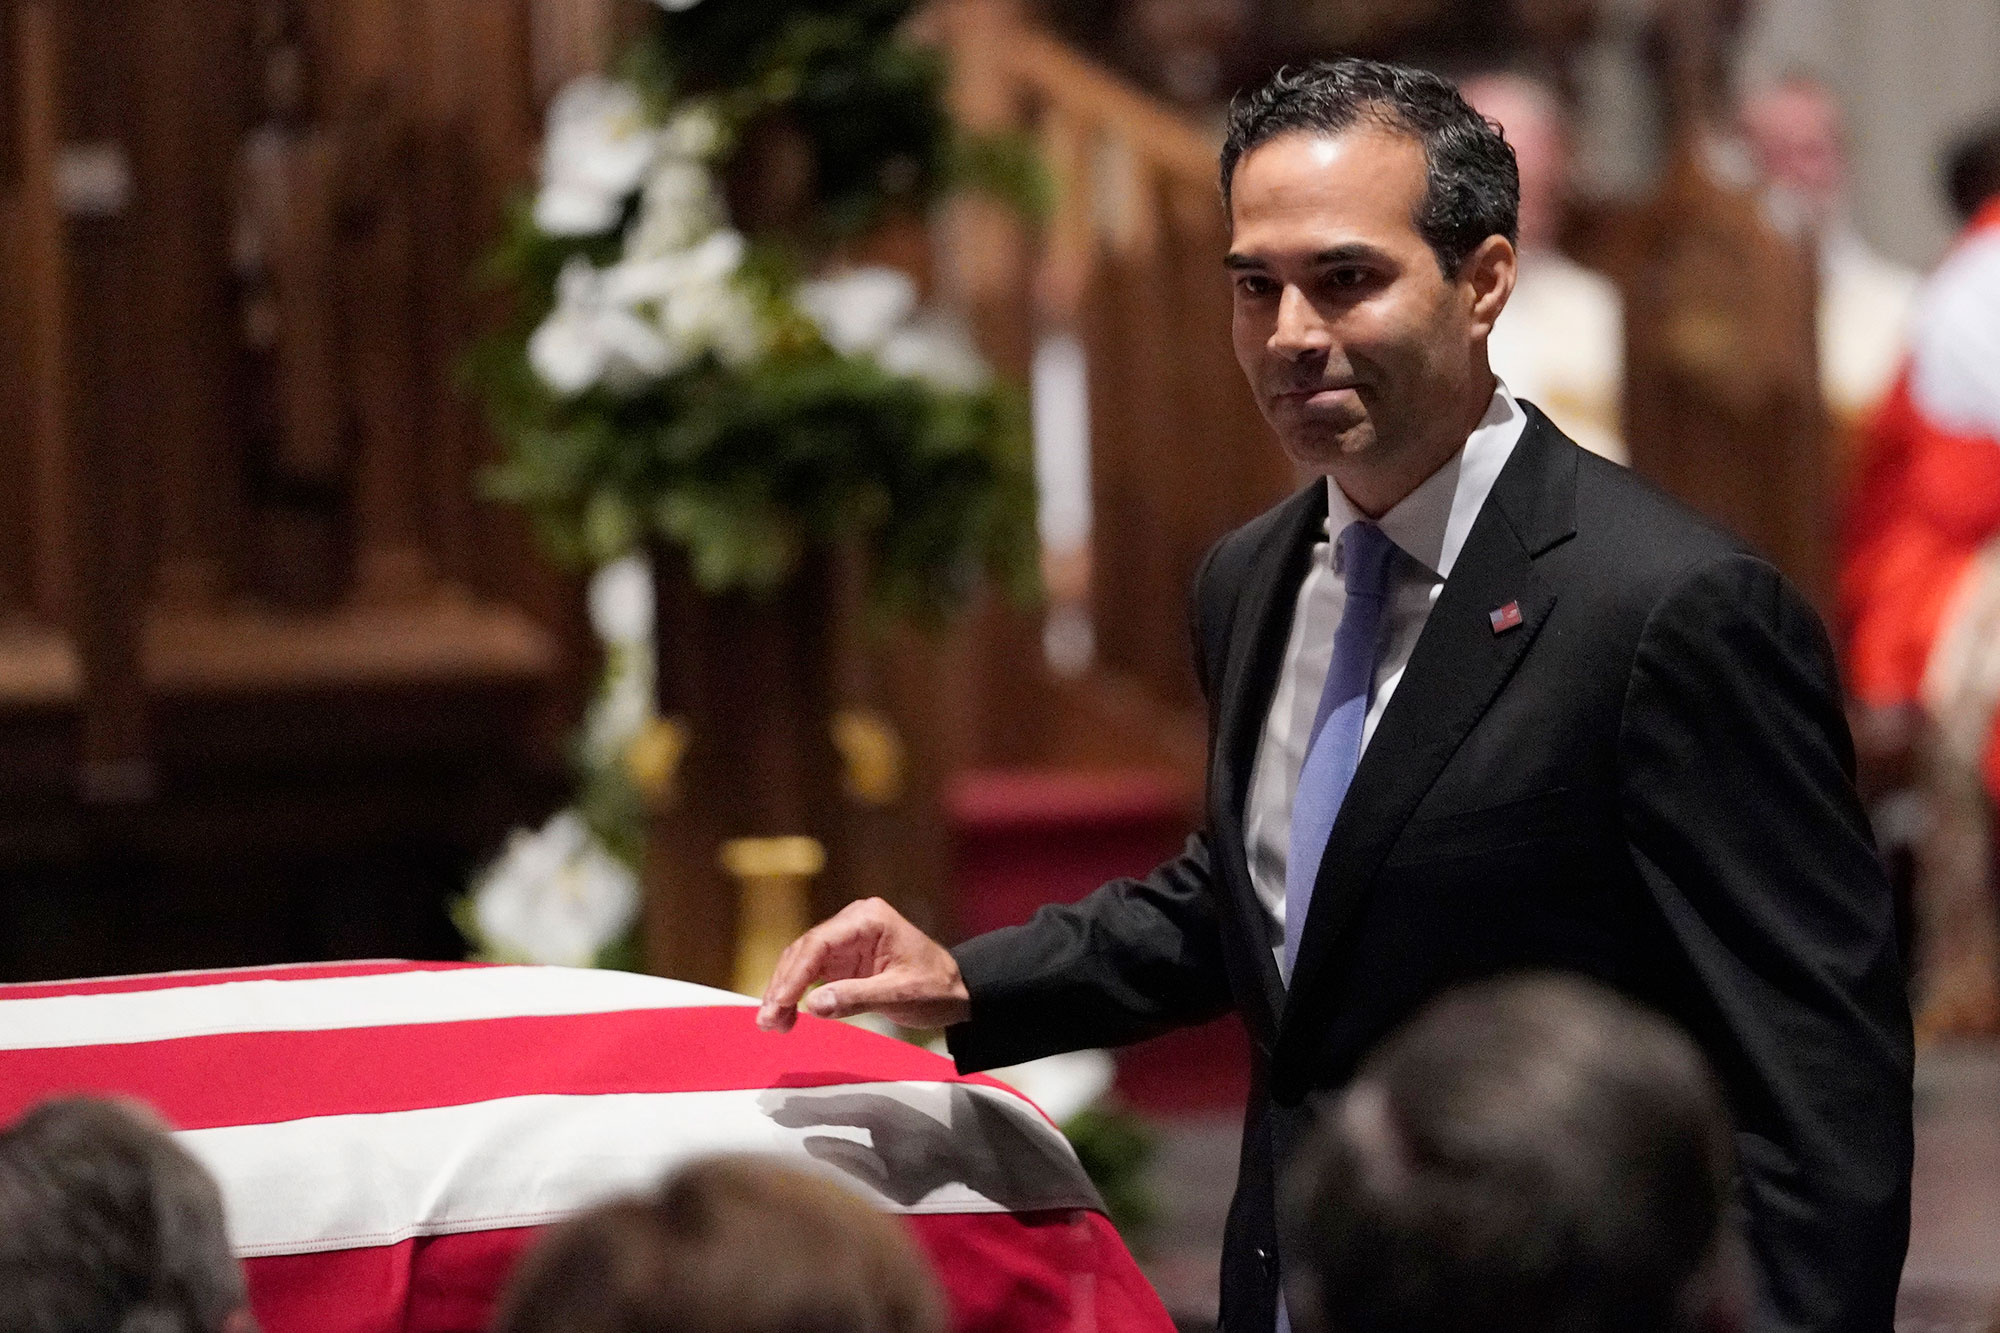 <div class='meta'><div class='origin-logo' data-origin='none'></div><span class='caption-text' data-credit='David J. Phillip, Pool/AP Photo'>George P. Bush walks past the casket of former President George H.W. Bush after giving a eulogy at St. Martin's Episcopal Church.</span></div>